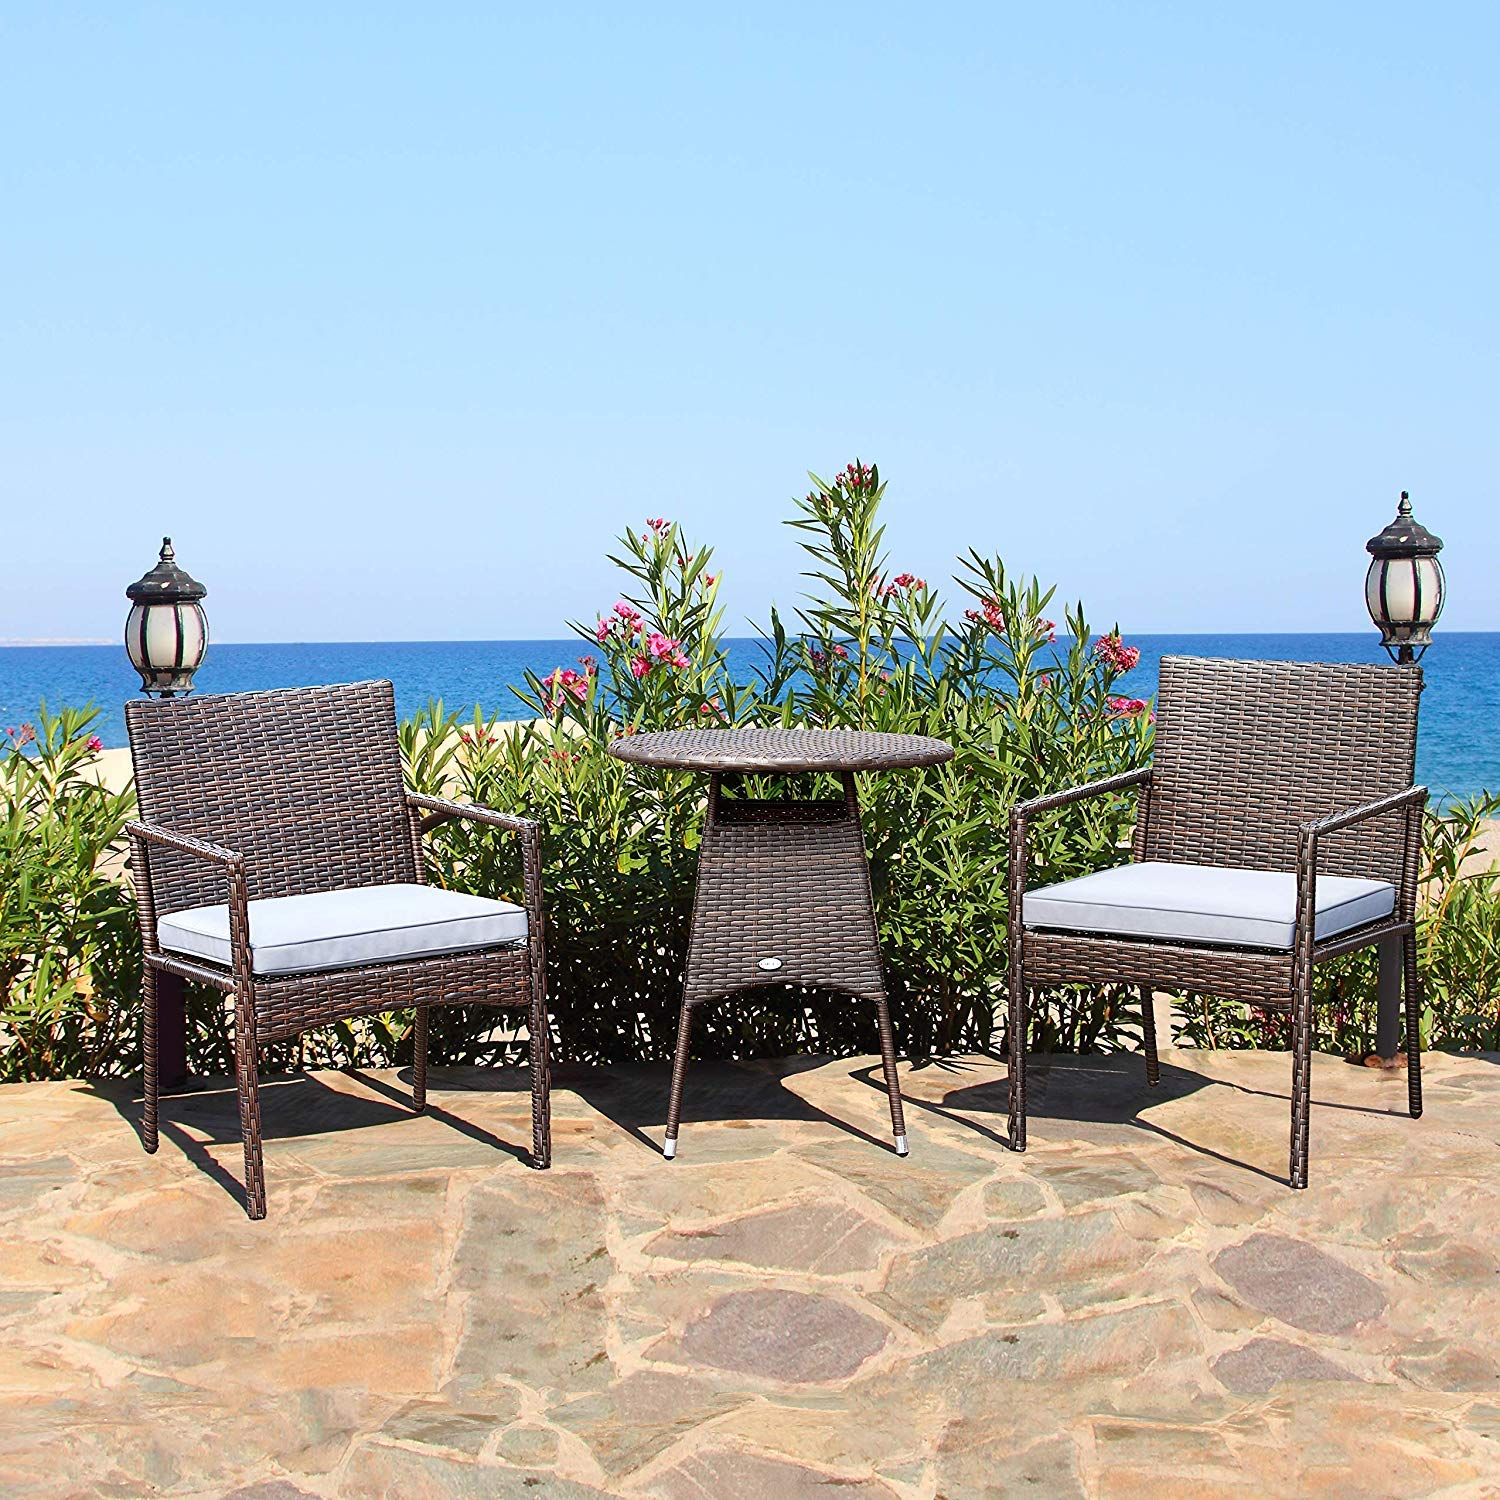 Tangkula 3 Piece Patio Furniture Set Wicker Rattan Outdoor Patio Conversation Set with 2 Cushioned Chairs & End Table Backyard Garden Lawn Chat Set Chill Time Modern Outdoor Furniture (Brown)